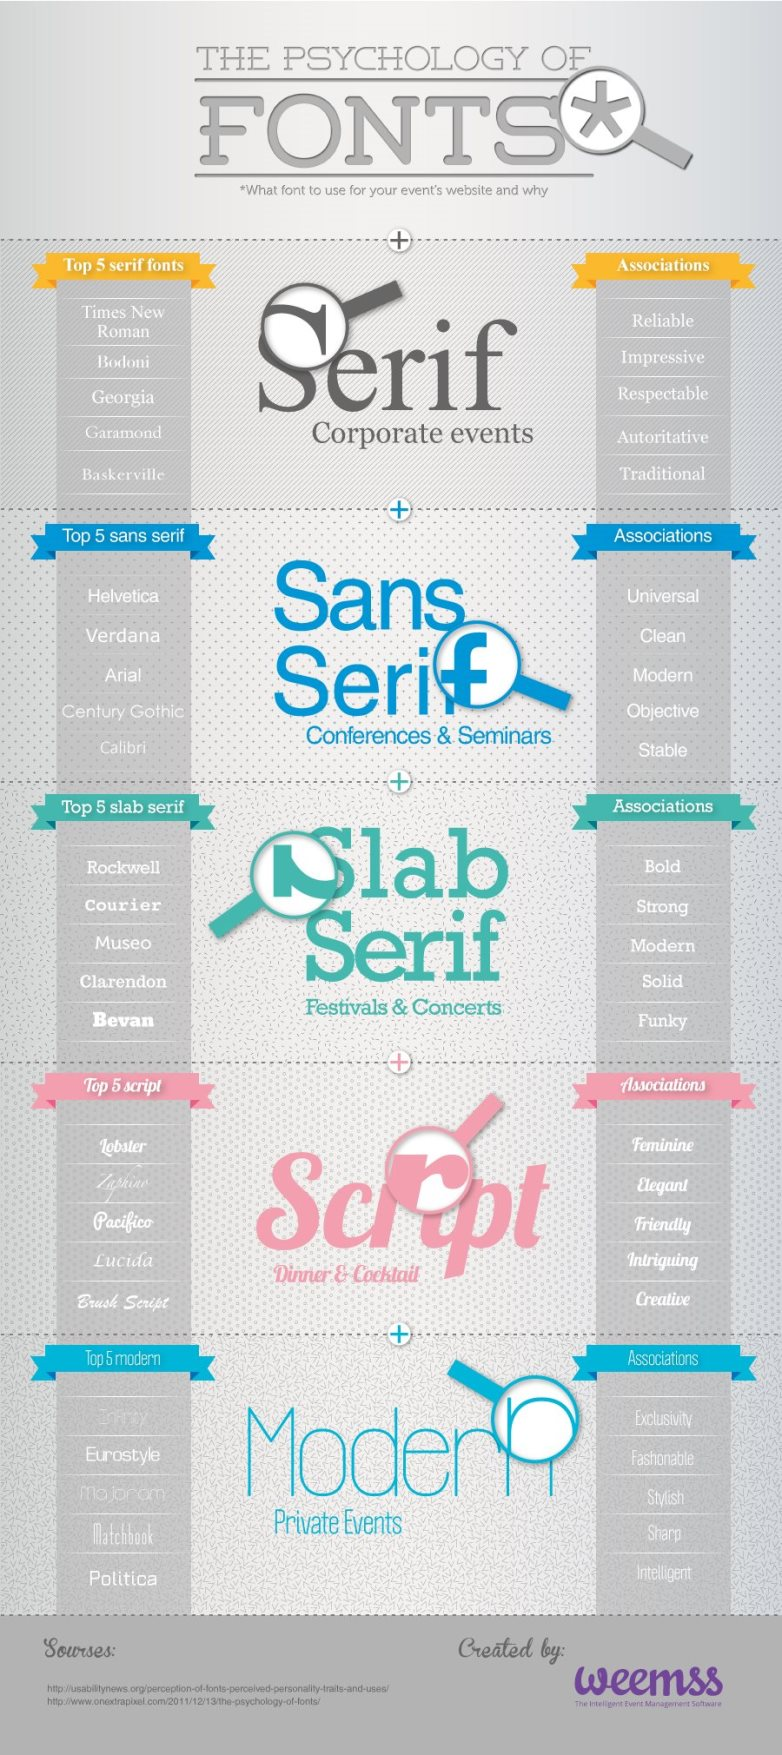 psychology-of-fonts.jpg